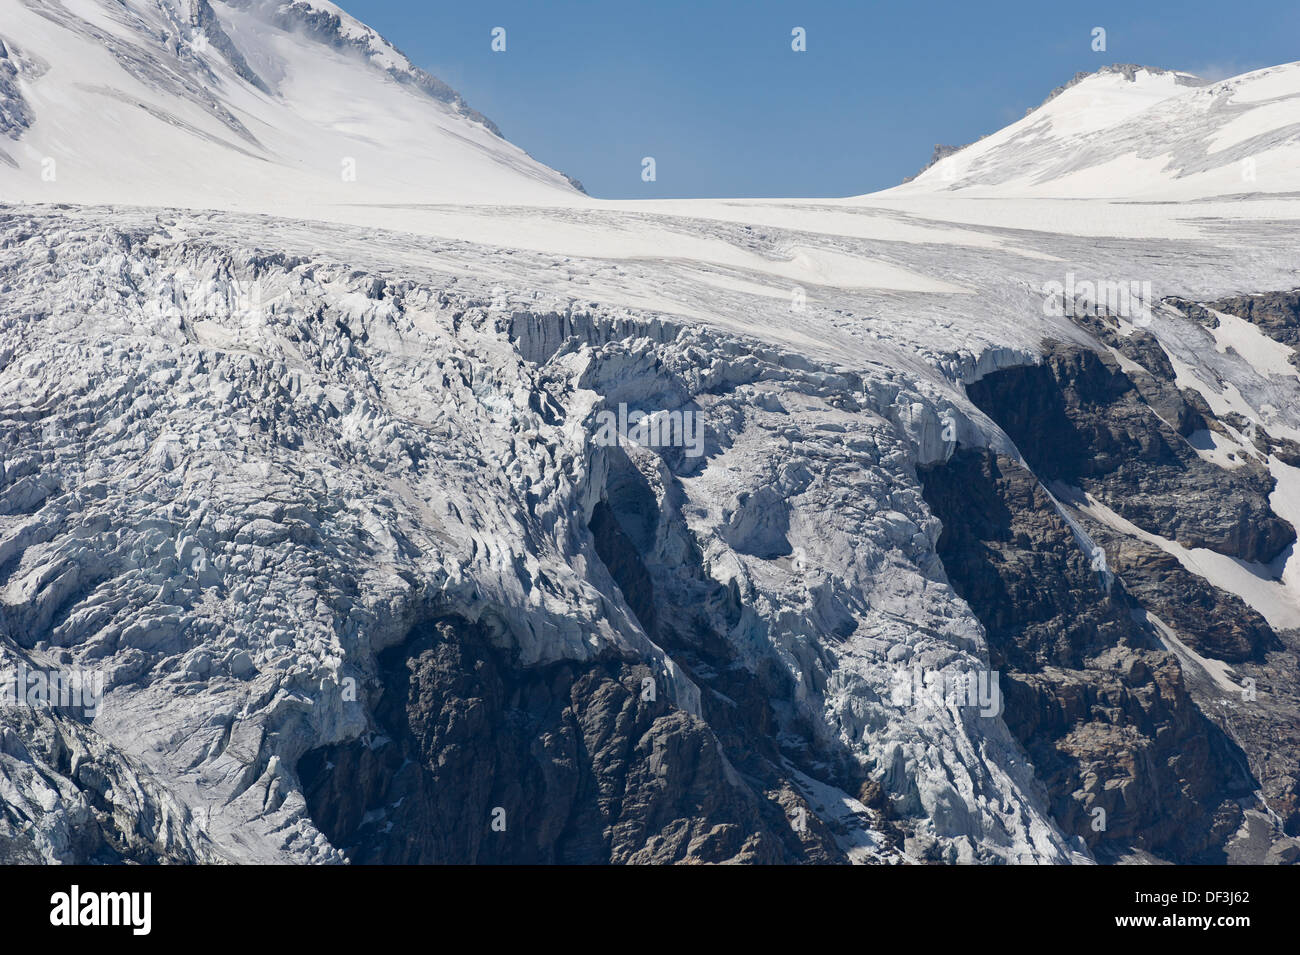 Austria / Hohe Tauern National Park - Impacts of Climate Change: glacier melting. Icefall at Pasterze glacier. - Stock Image